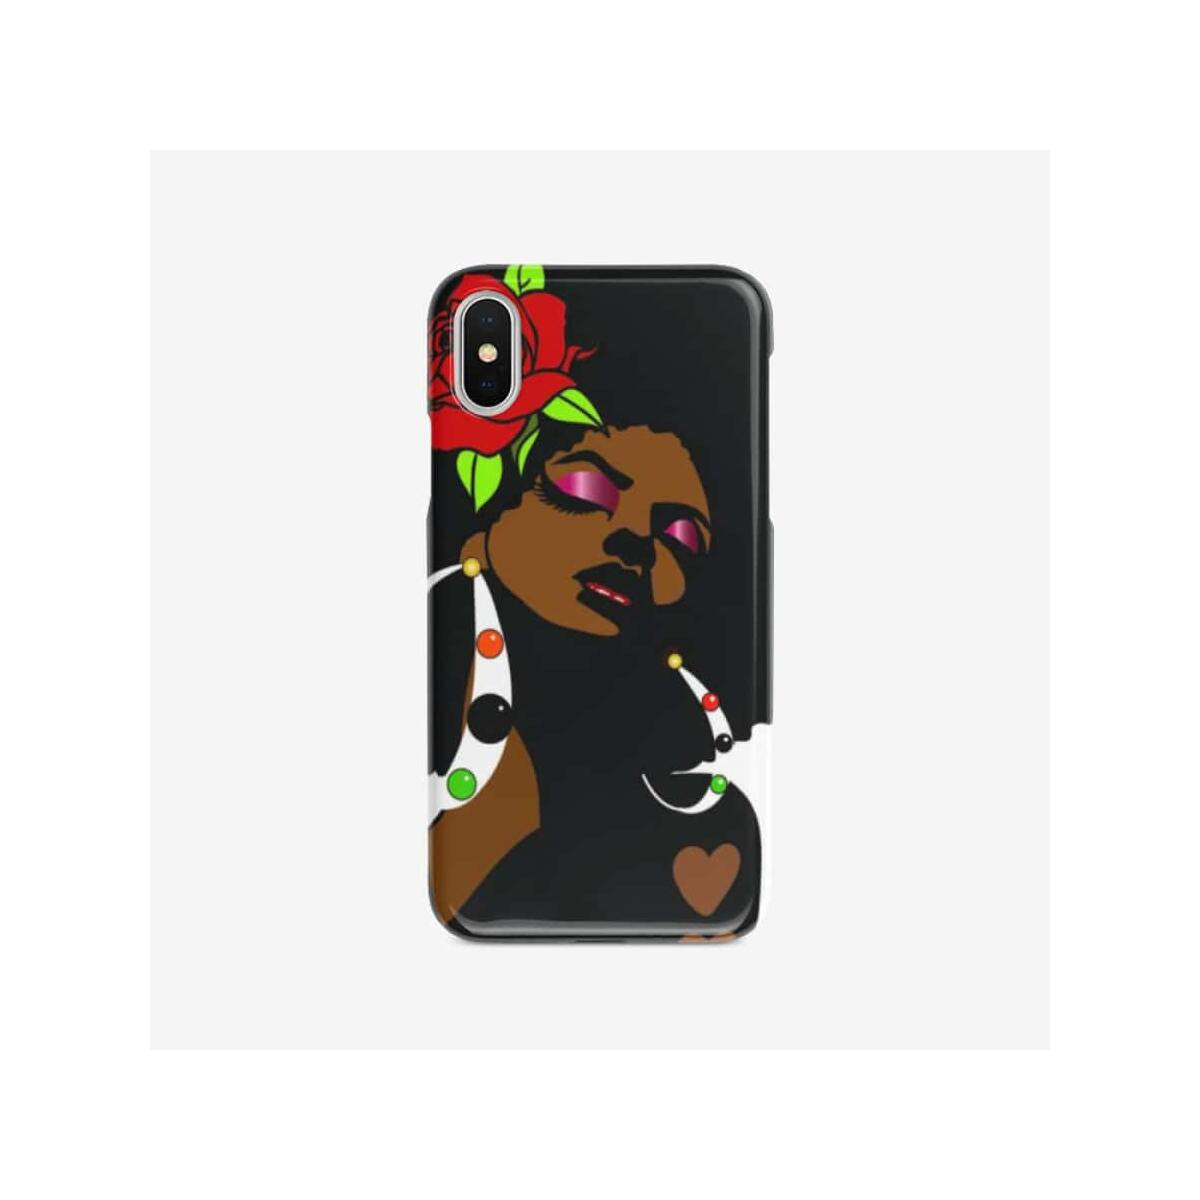 Black Afro Girl With a Red Rose Iphone case, iPhone SE